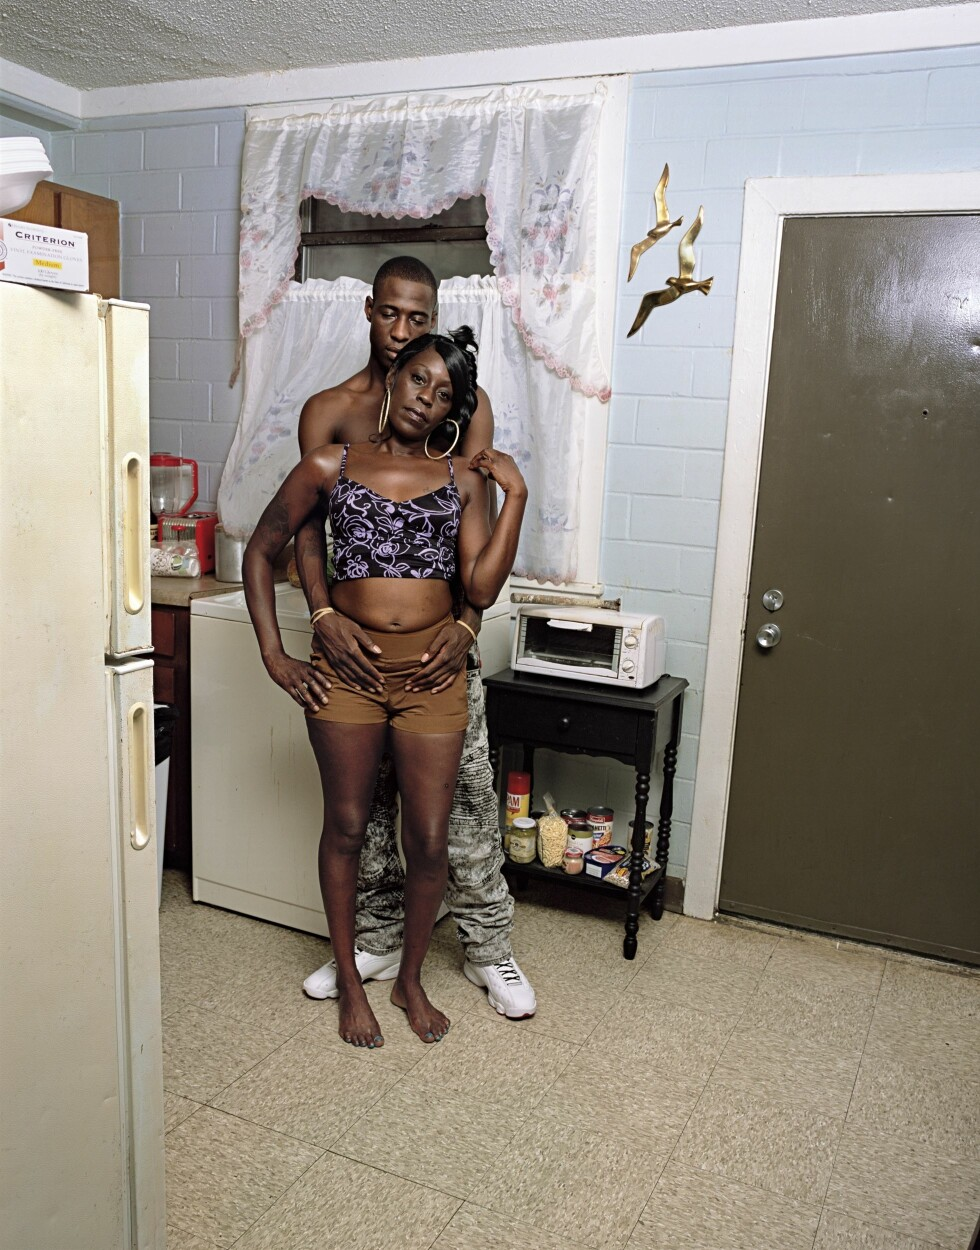 VIKTIG BOK: Deana Lawson, «Seagulls in Kitchen», 2017; fra Deana Lawson: «An Aperture Monograph» (Aperture, 2018). © 2018 Deana Lawson and courtesy Rhona Hoffman Gallery, Chicago, and Sikkema Jenkins & Co., New York